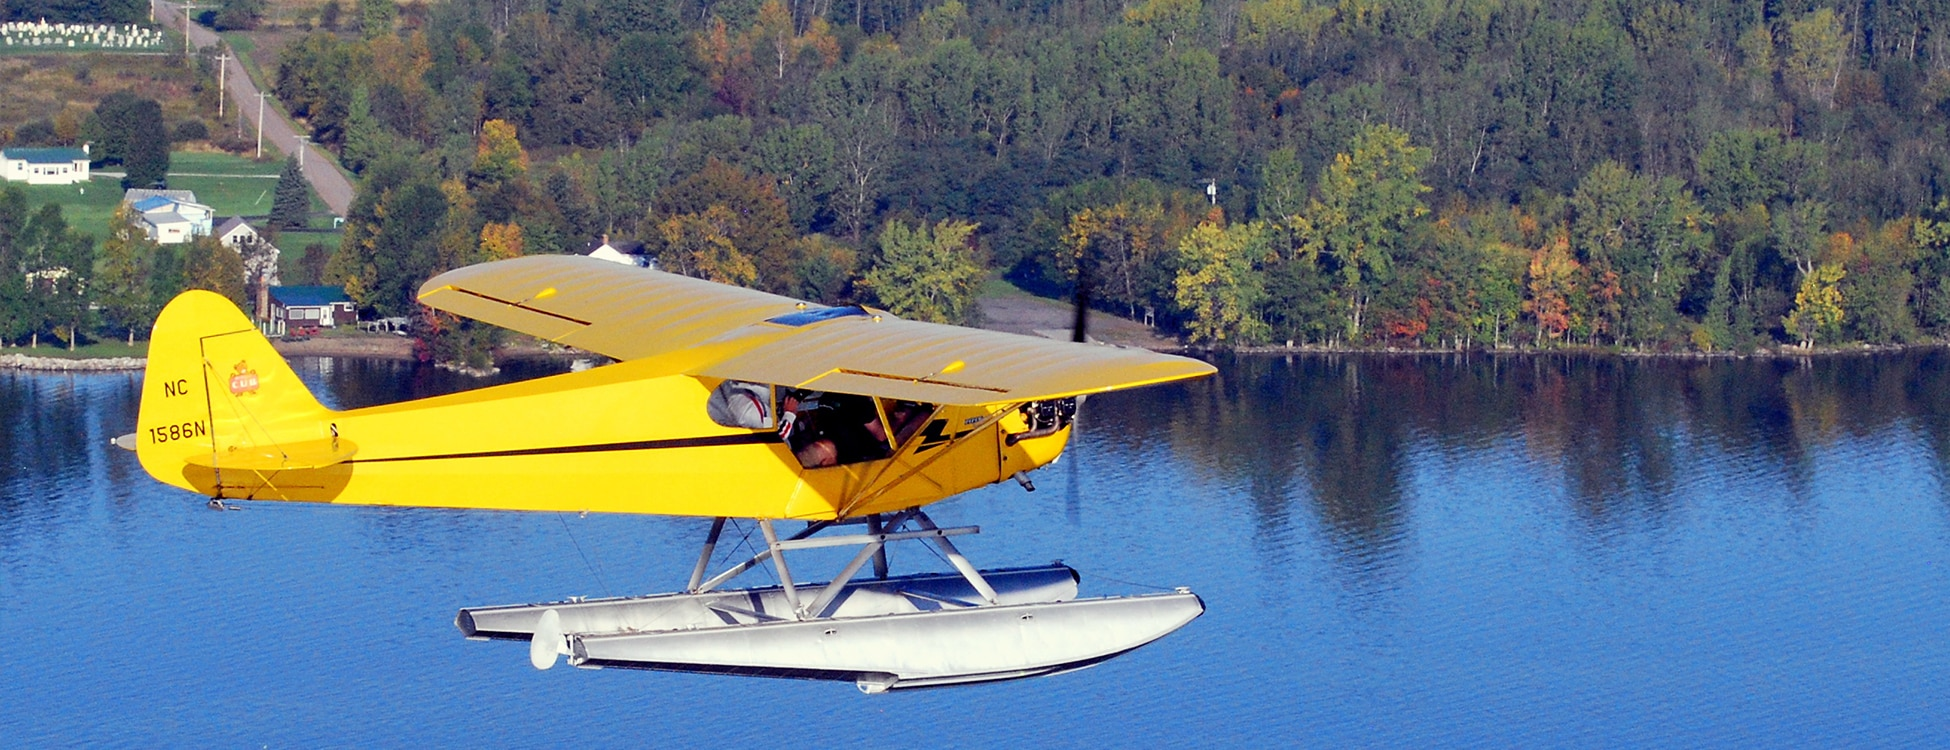 Yellow plane with floats flies about the water